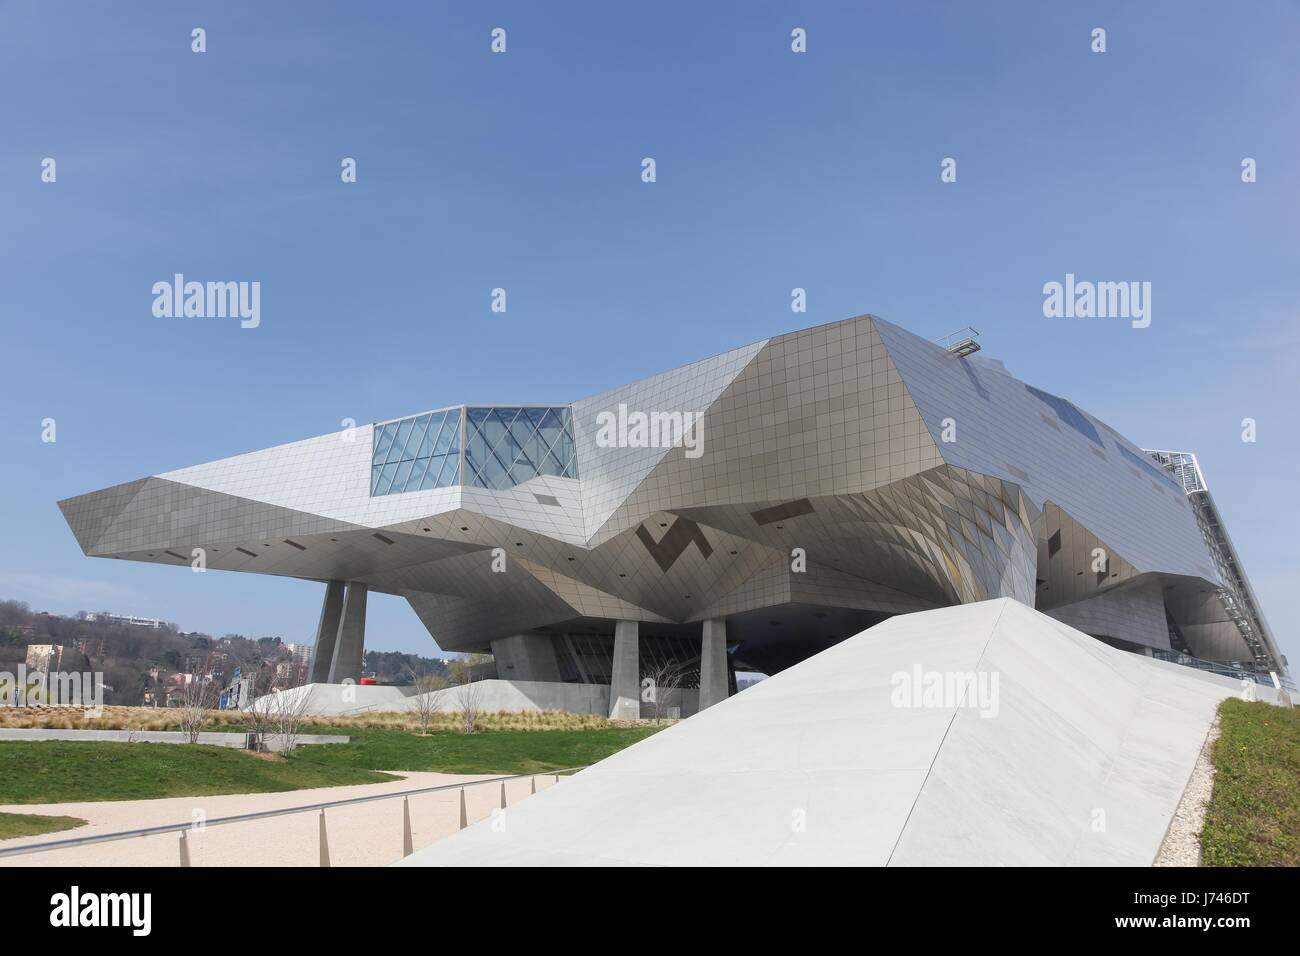 Lyon, France - March 15, 2017: The Musee des Confluences in Lyon, France Stock Photo